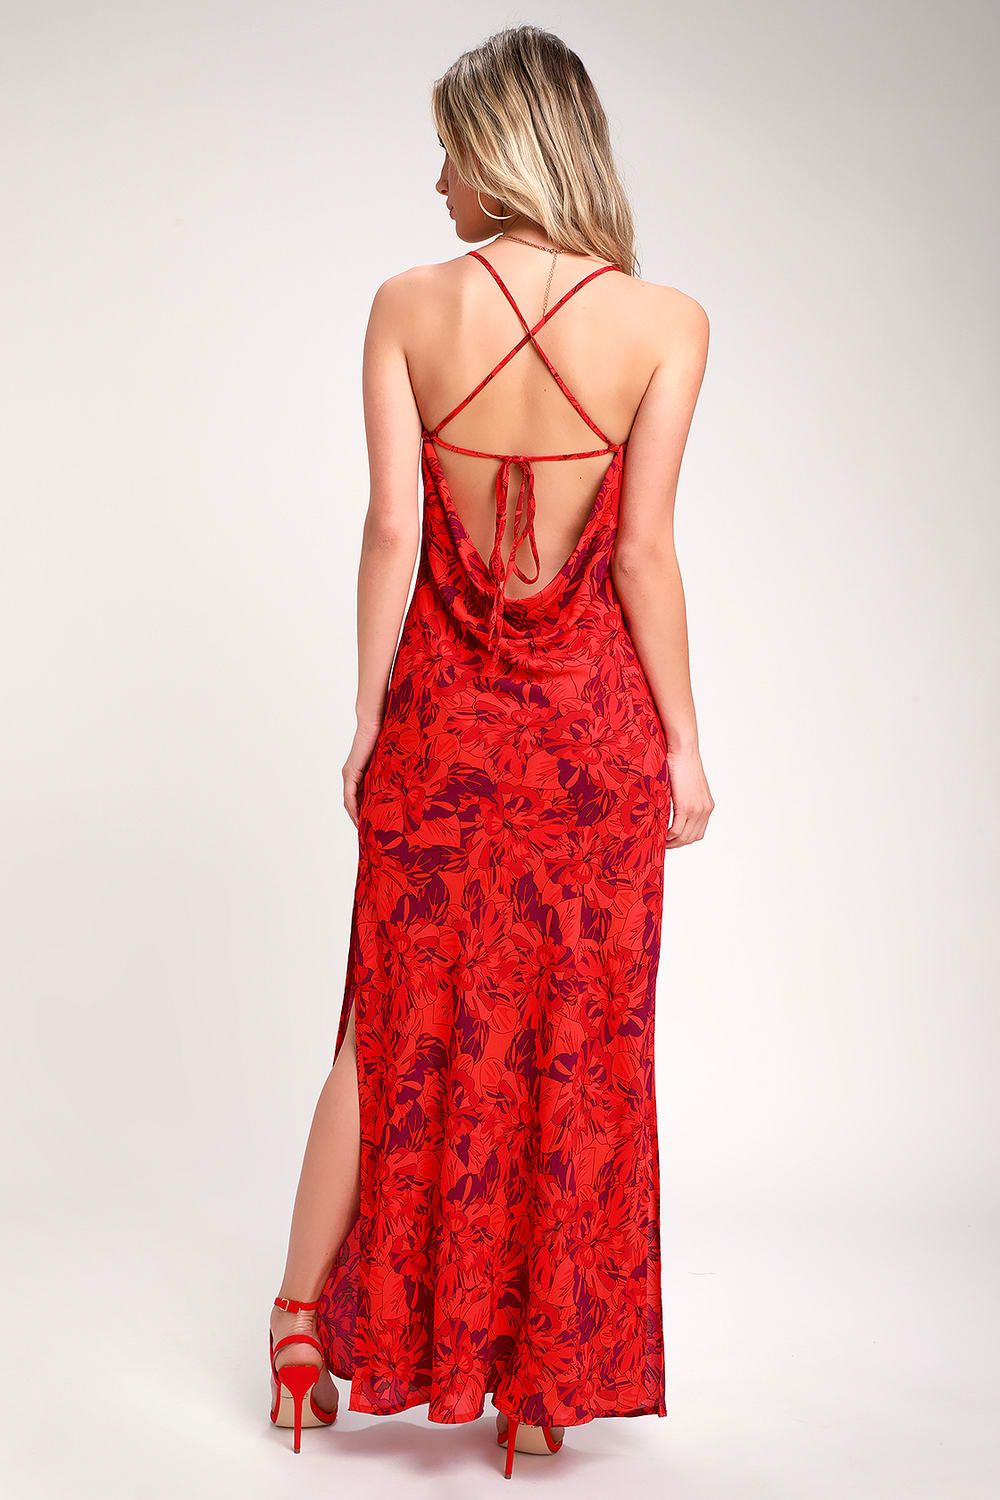 c616759fdf Sunset the Mood Red Multi Floral Print Lace-Up Maxi Dress in 2019 ...